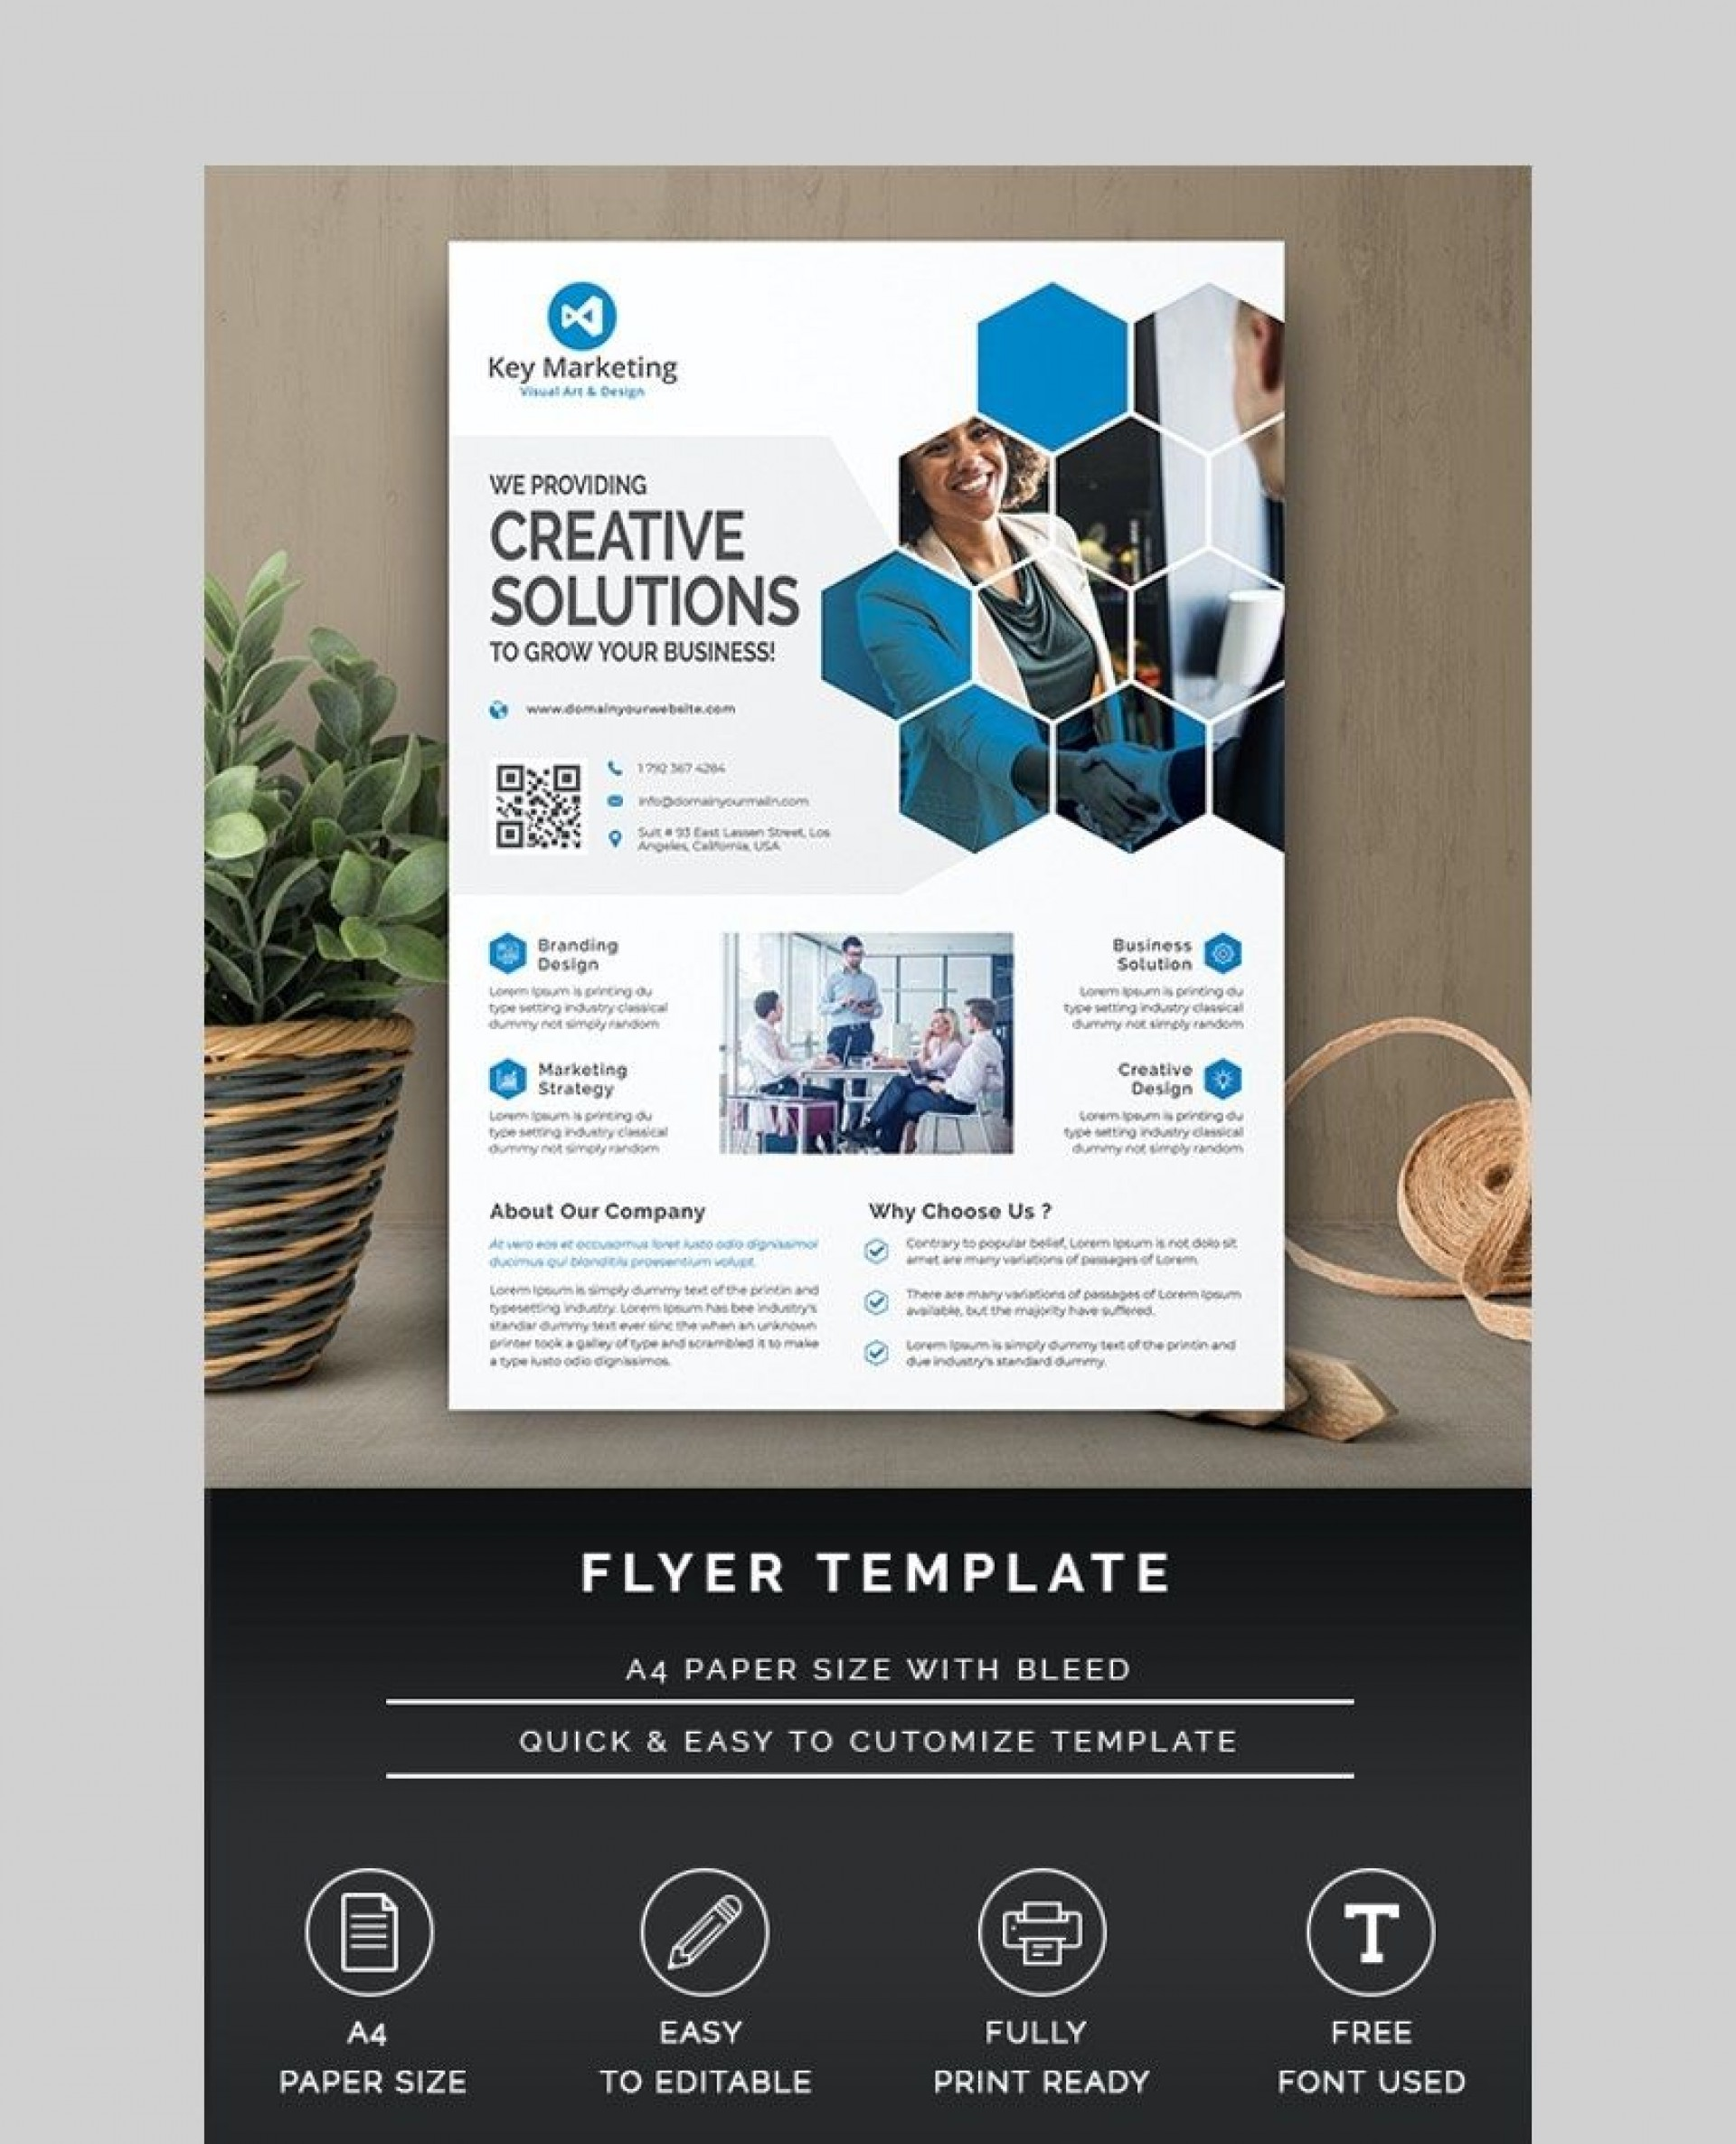 006 Remarkable In Design Flyer Template Sample  Templates Indesign Free For Mac Event1920